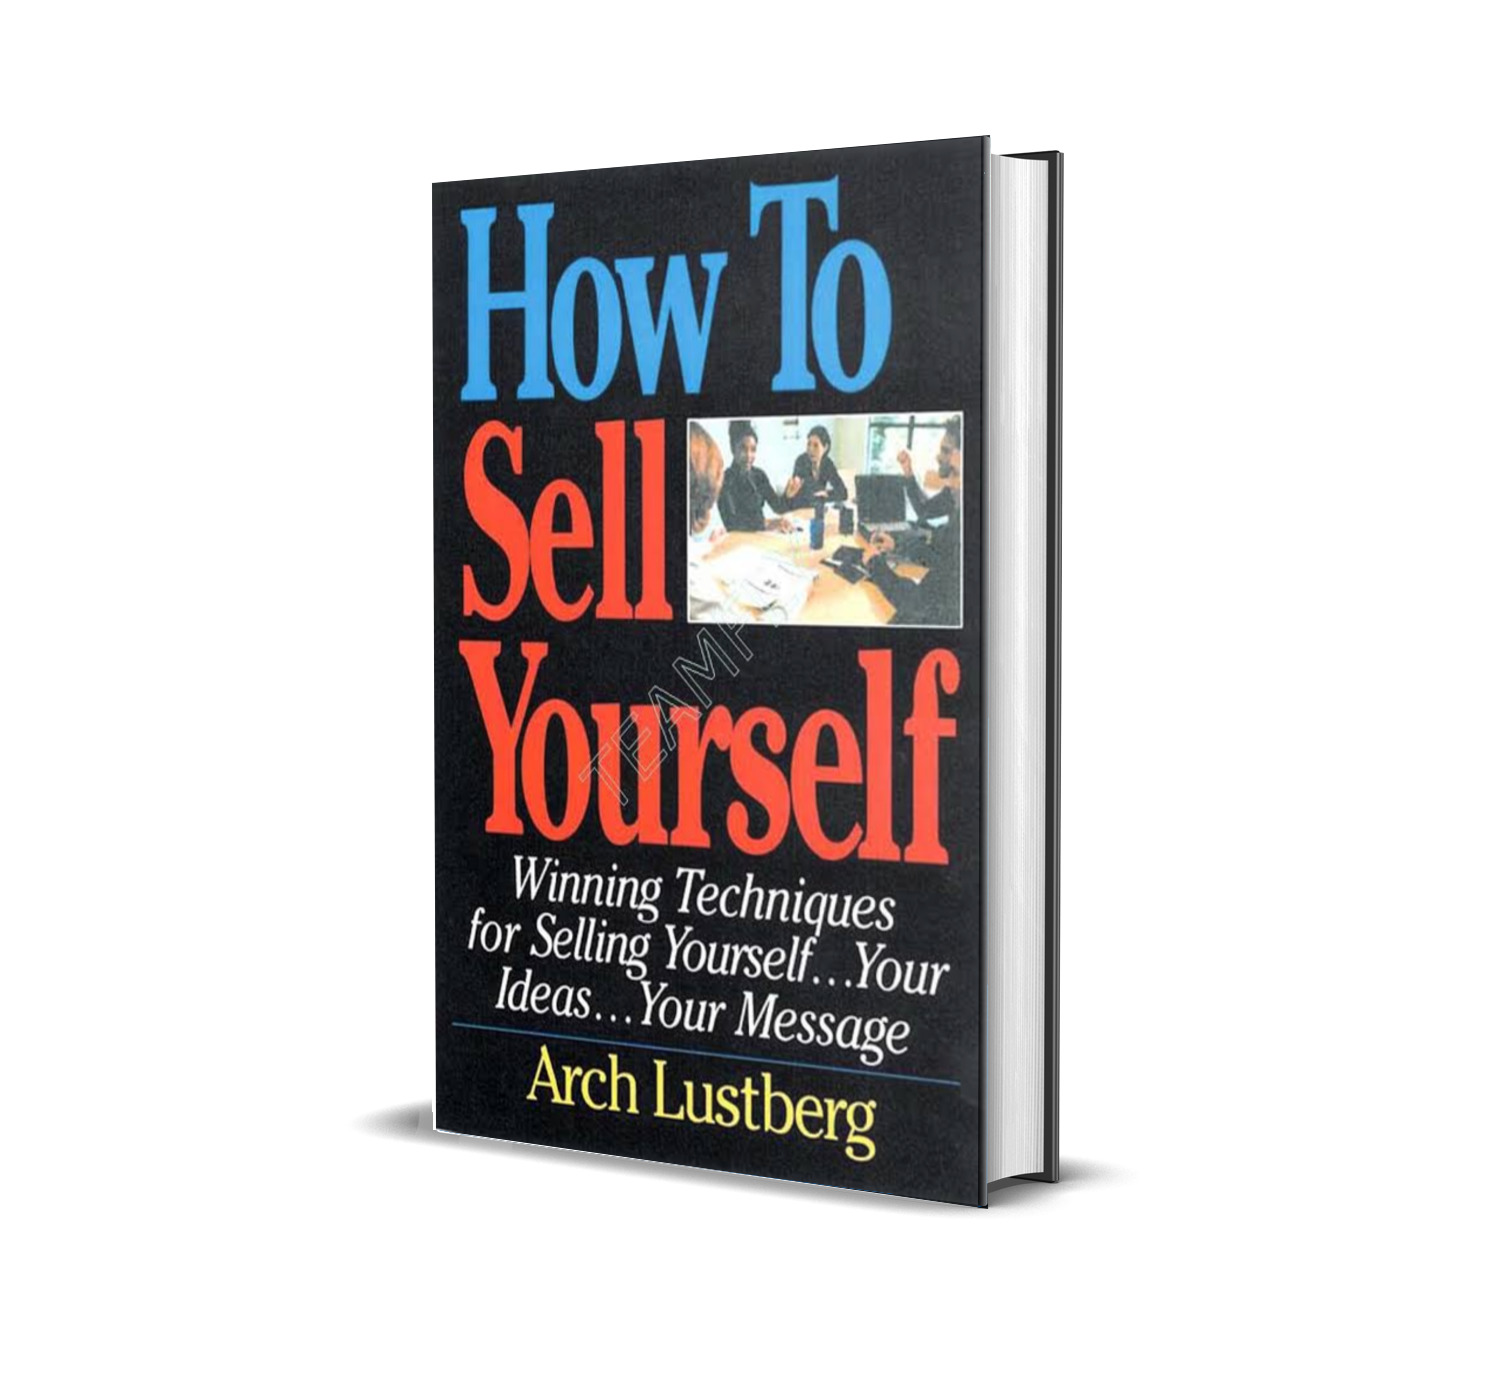 How to sell yourself- Arch Lustberg